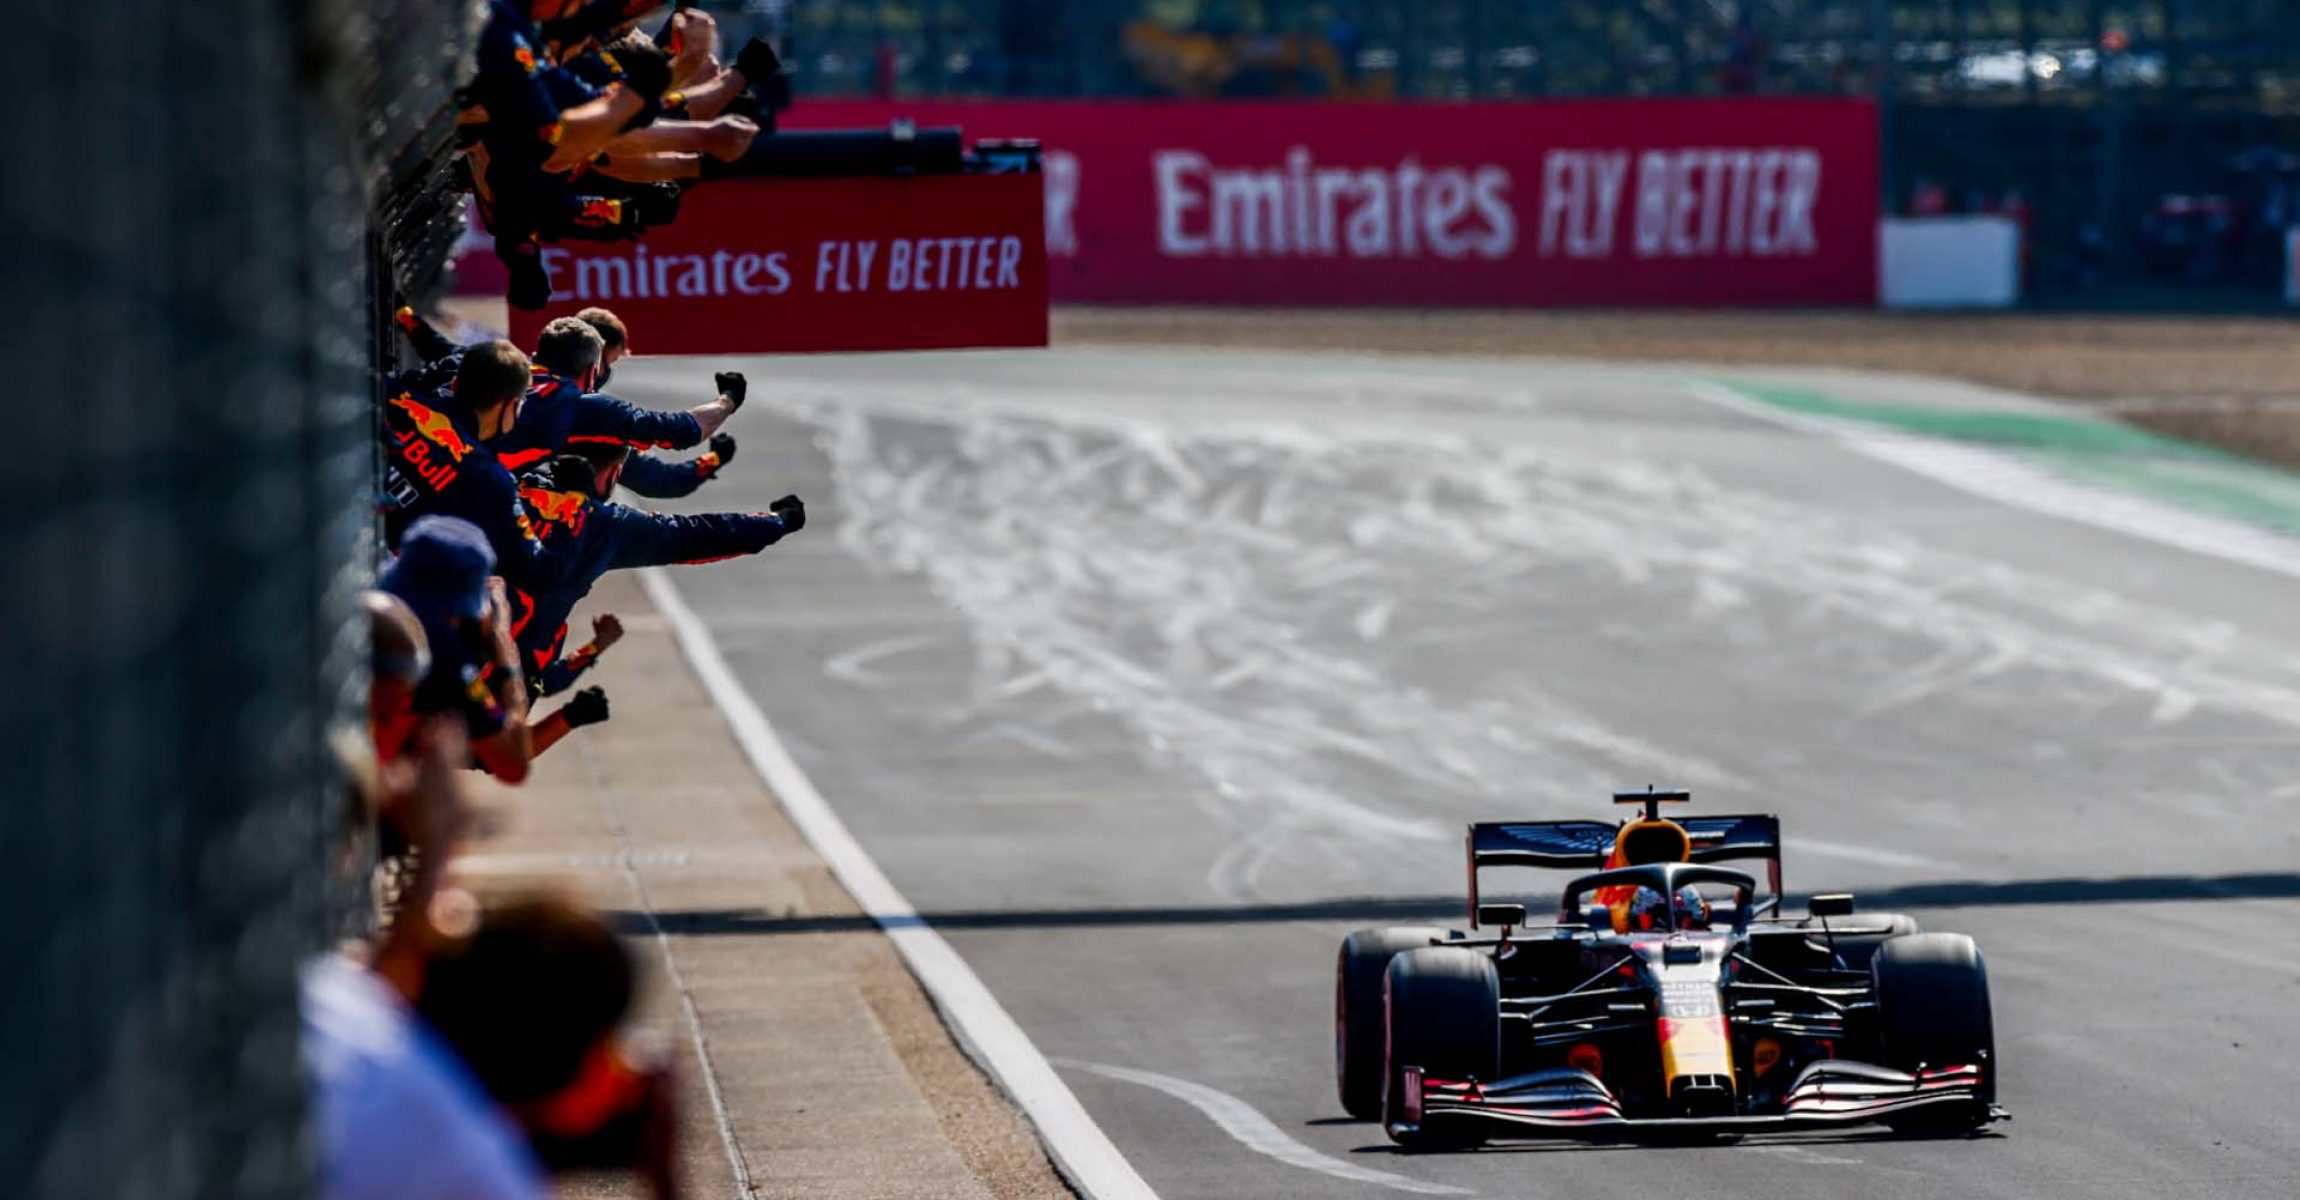 NORTHAMPTON, ENGLAND - AUGUST 09: Max Verstappen of Red Bull Racing and The Netherlands wins the F1 70th Anniversary Grand Prix at Silverstone on August 09, 2020 in Northampton, England. (Photo by Peter Fox/Getty Images)